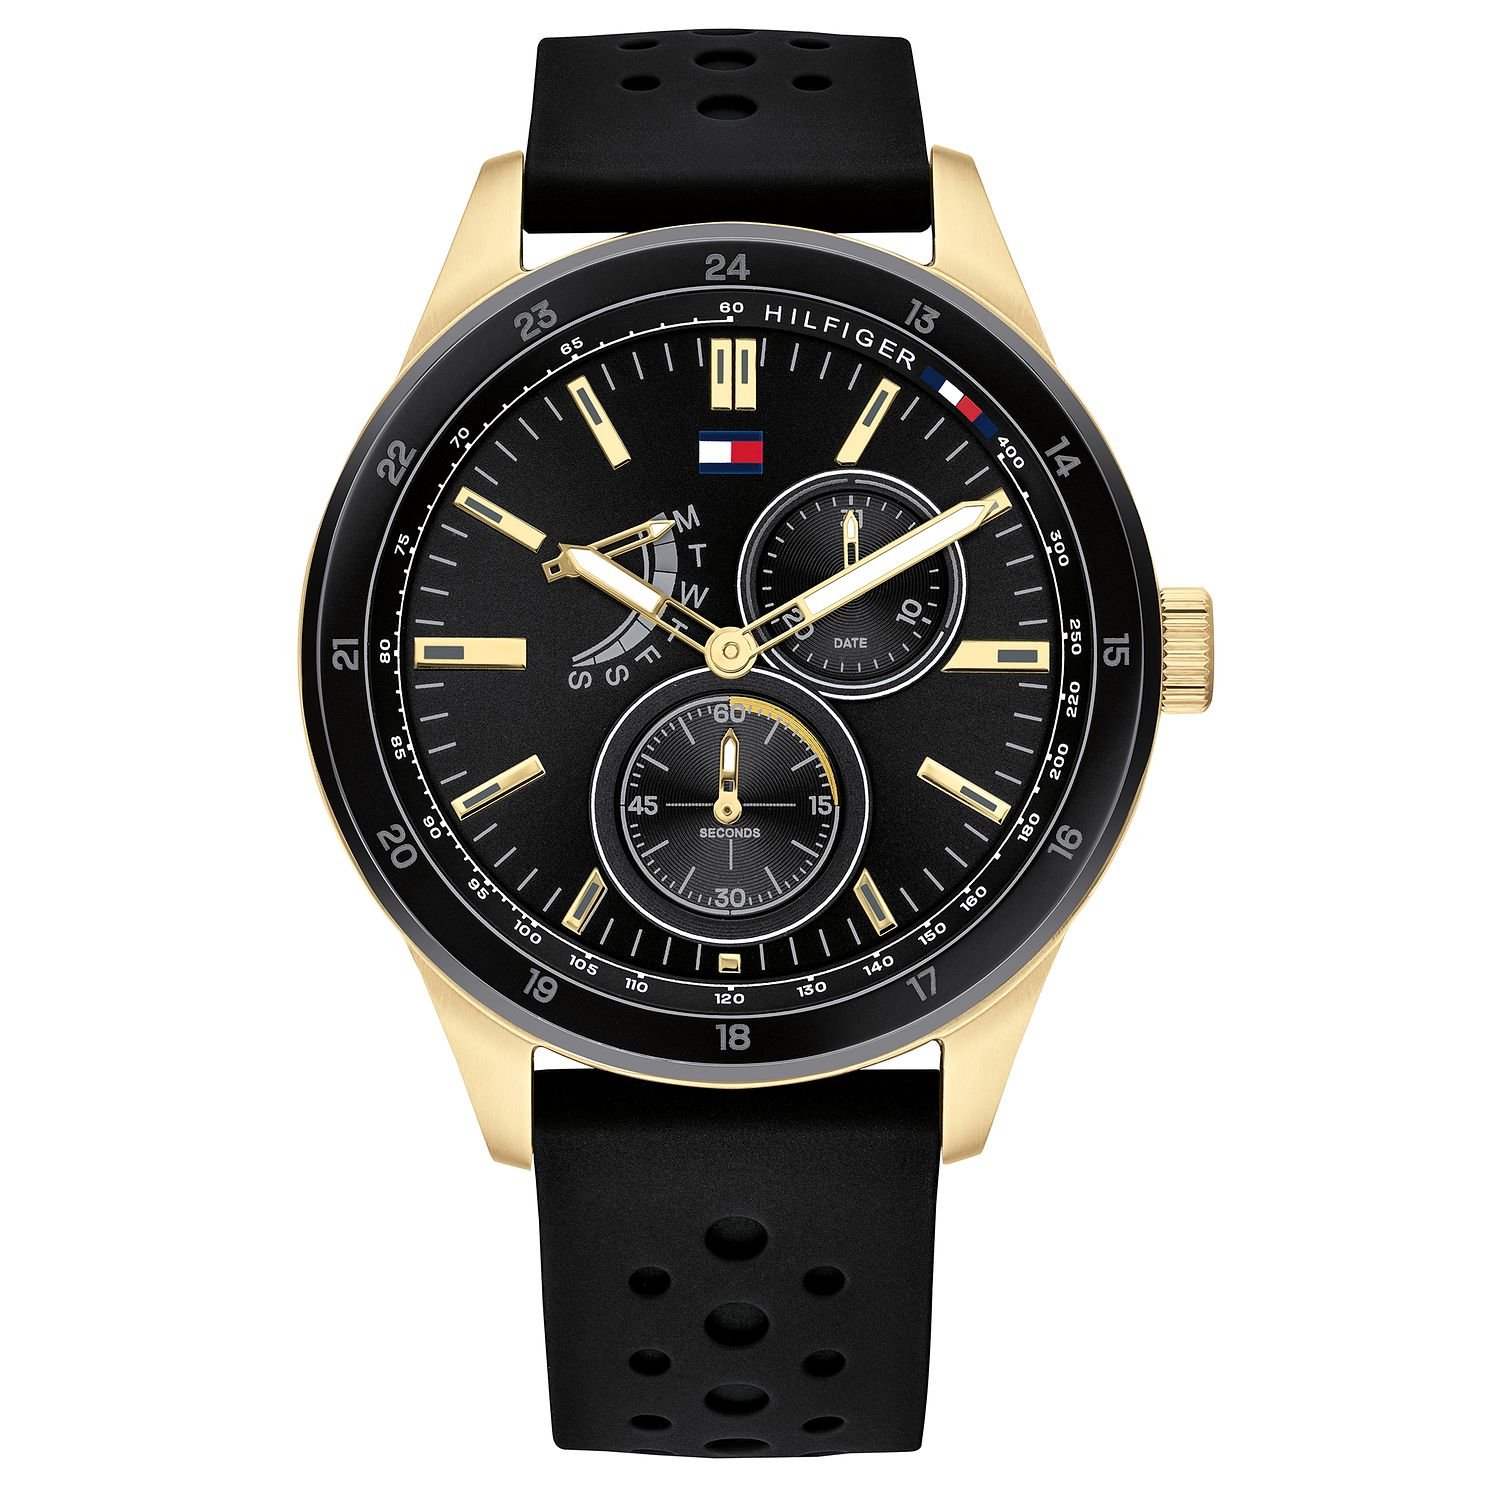 Tommy Hilfiger Men's Black Silicone Strap Watch - Product number 2874016